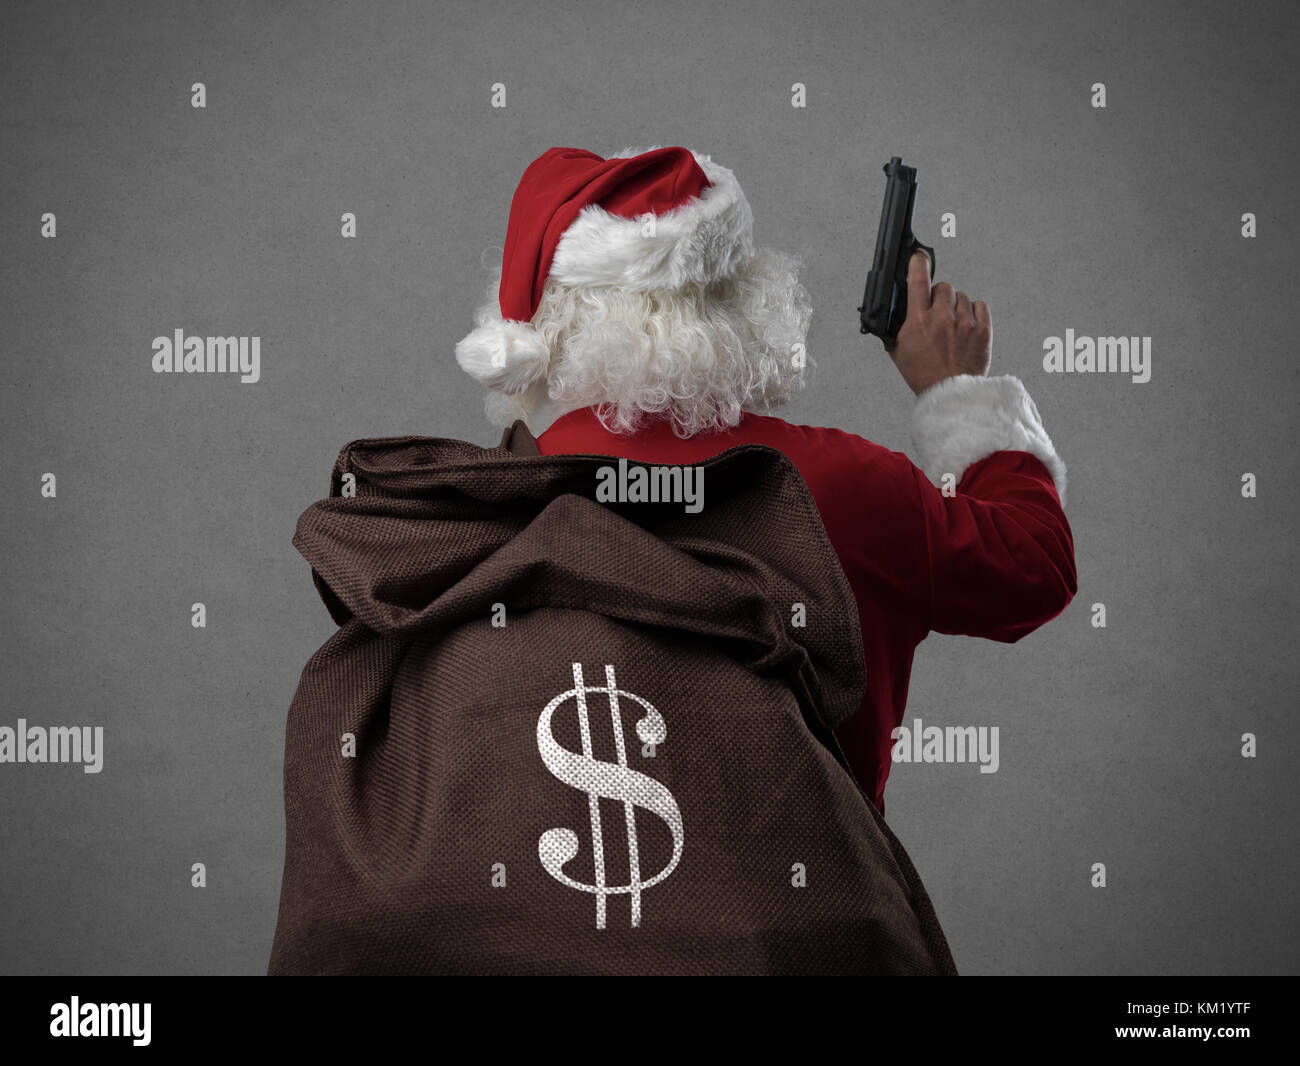 Criminal disguised as Santa Claus holding a gun and carrying a sack full of stolen money, he is robbing houses on - Stock Image